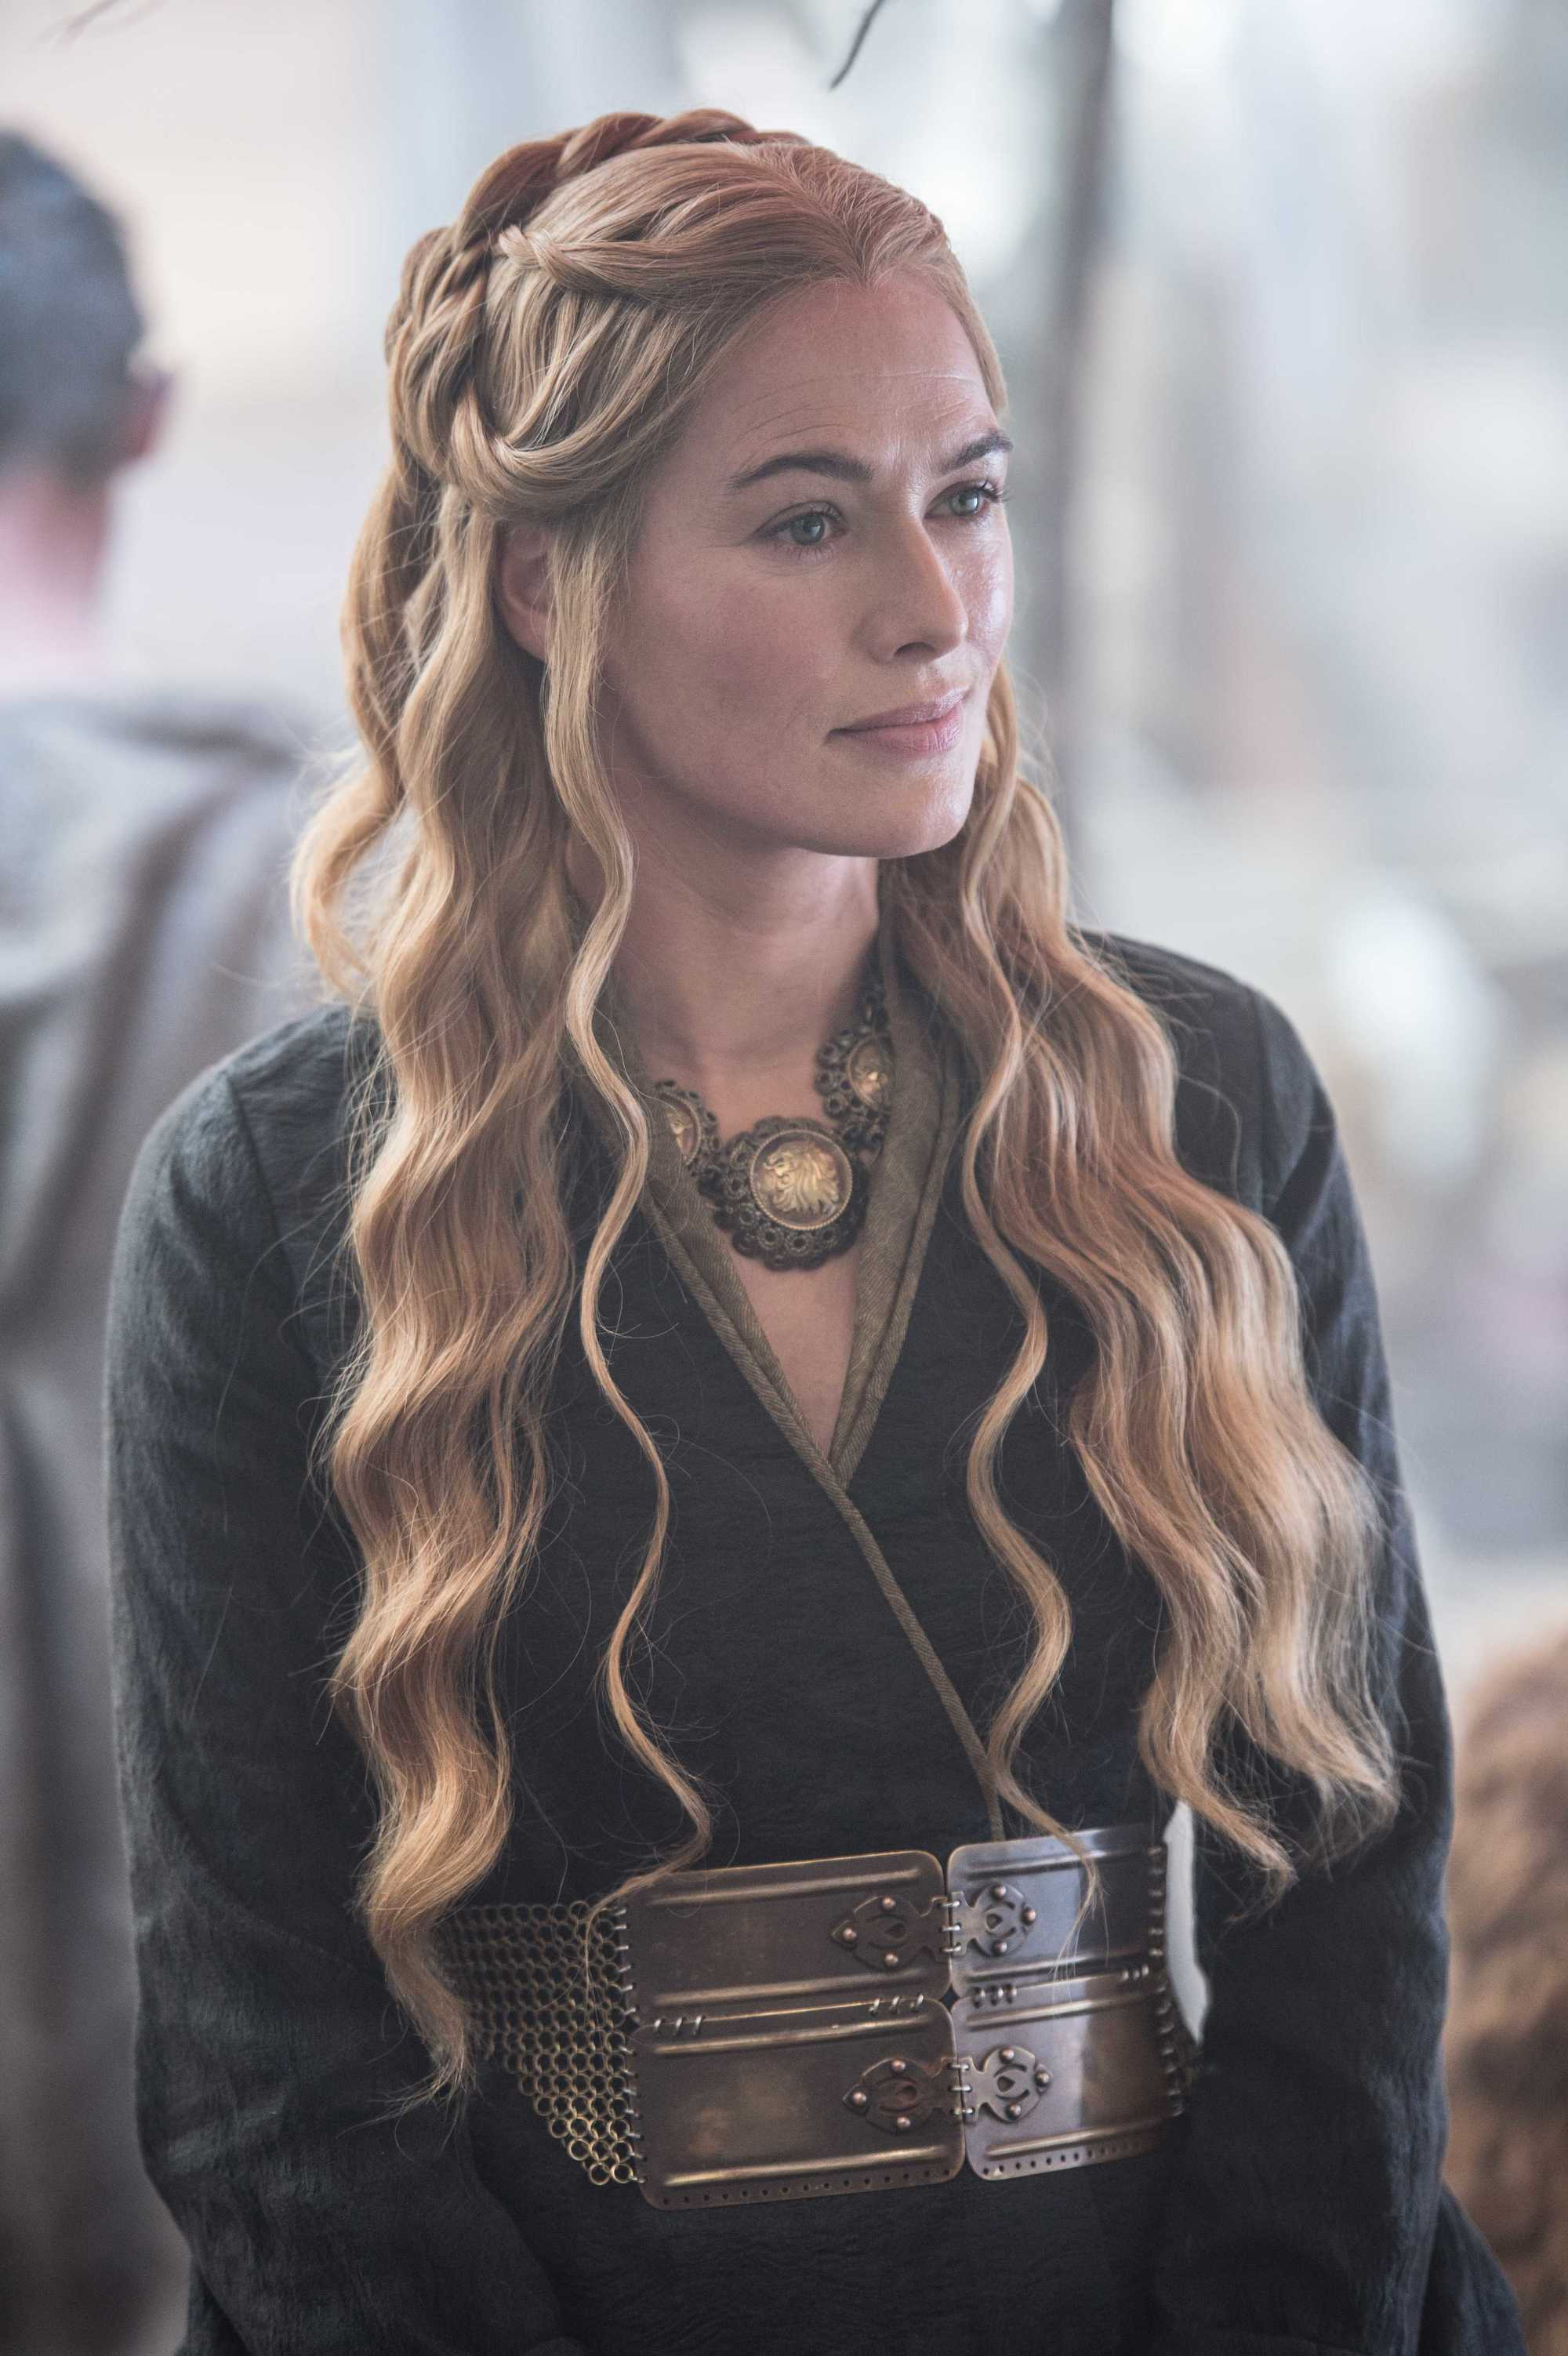 Easy renaissance hairstyles: Game of Thrones' Cersei Lannister with long honey blonde hair styled into half-up, half-down waves, wearing all black on set